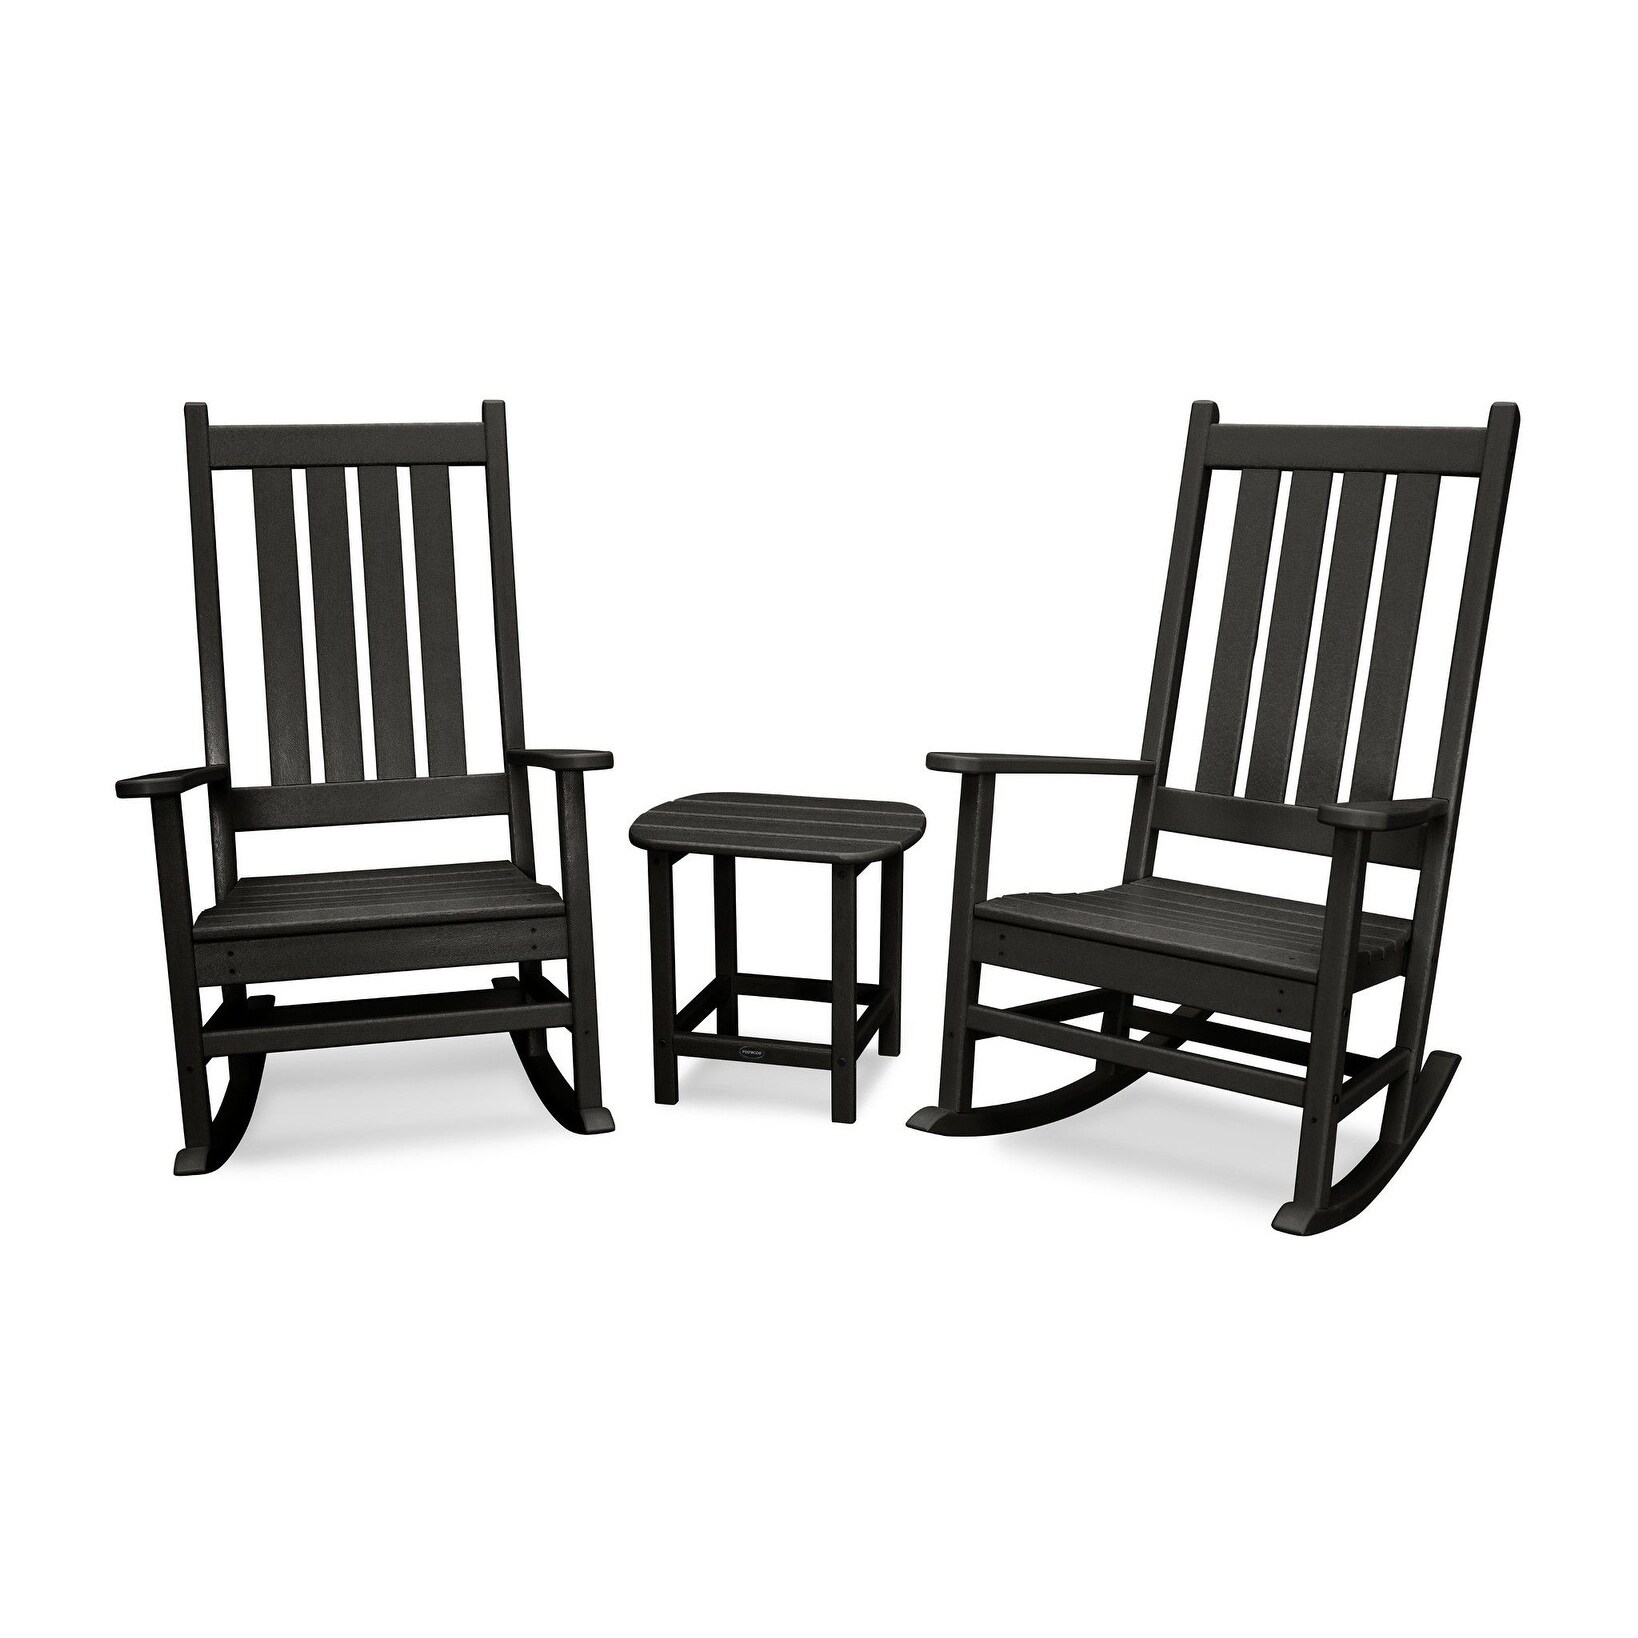 Outdoor Rocking Chair Set Polywood Vineyard 3 Piece Outdoor Rocking Chair Set